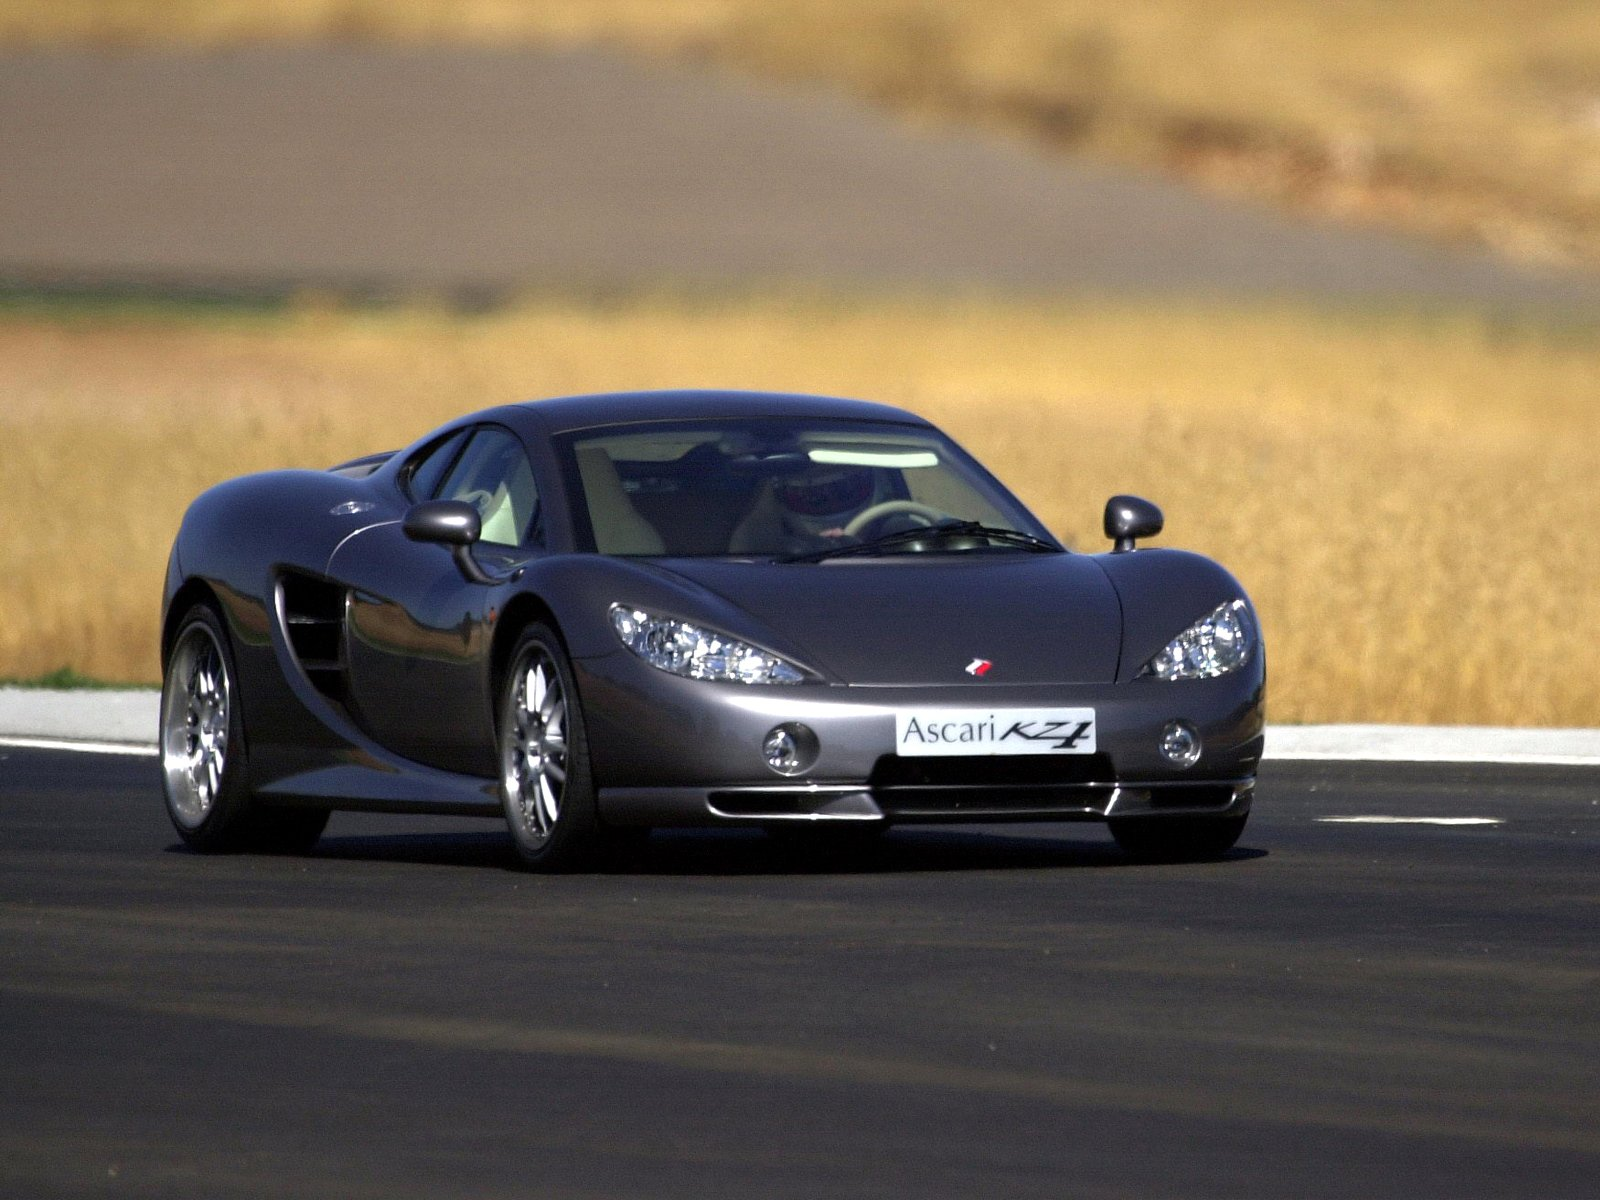 Most Expensive Car Hd Wallpaper Ascari Pictures Wallpapers Pics Photos Amp Quality Images